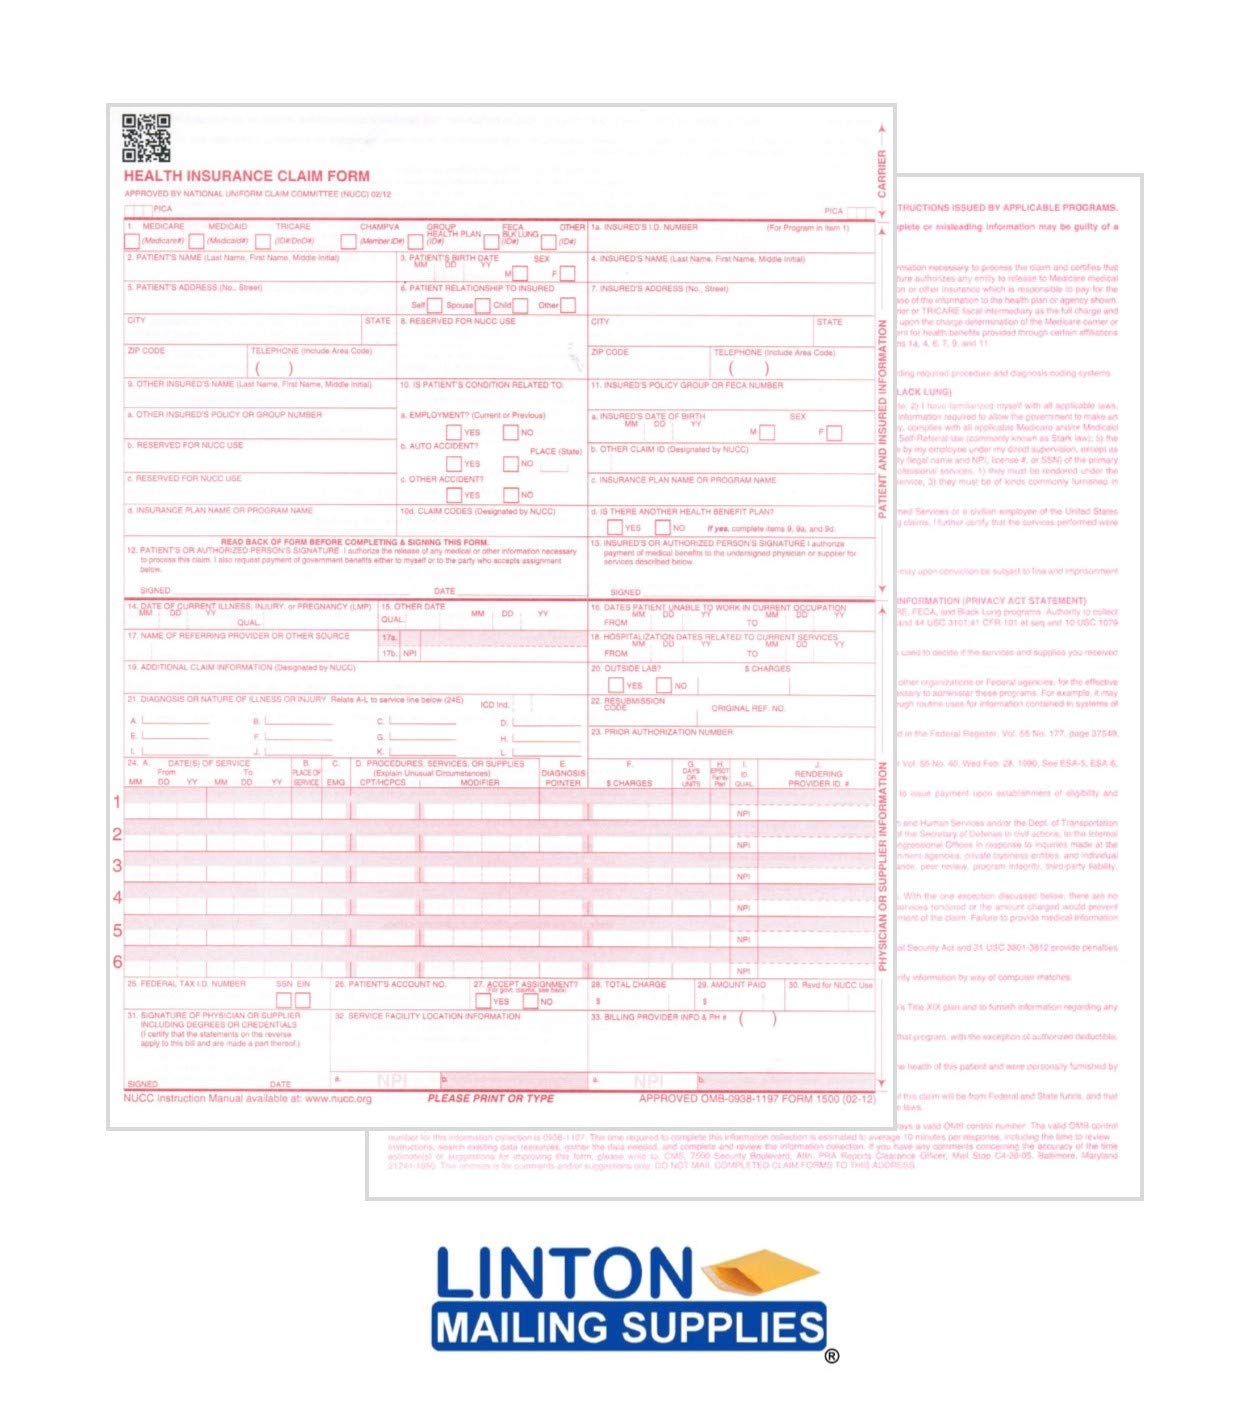 Health Insurance Claim Forms, New CMS-1500, HCFA (04/14 Medicare Approved 02/12 Version), 1-Part, 8.5'' x 11'' 24-lb Paper - 1 CASE of 2500 Sheets/Forms by LINTON MAILING SUPPLIES